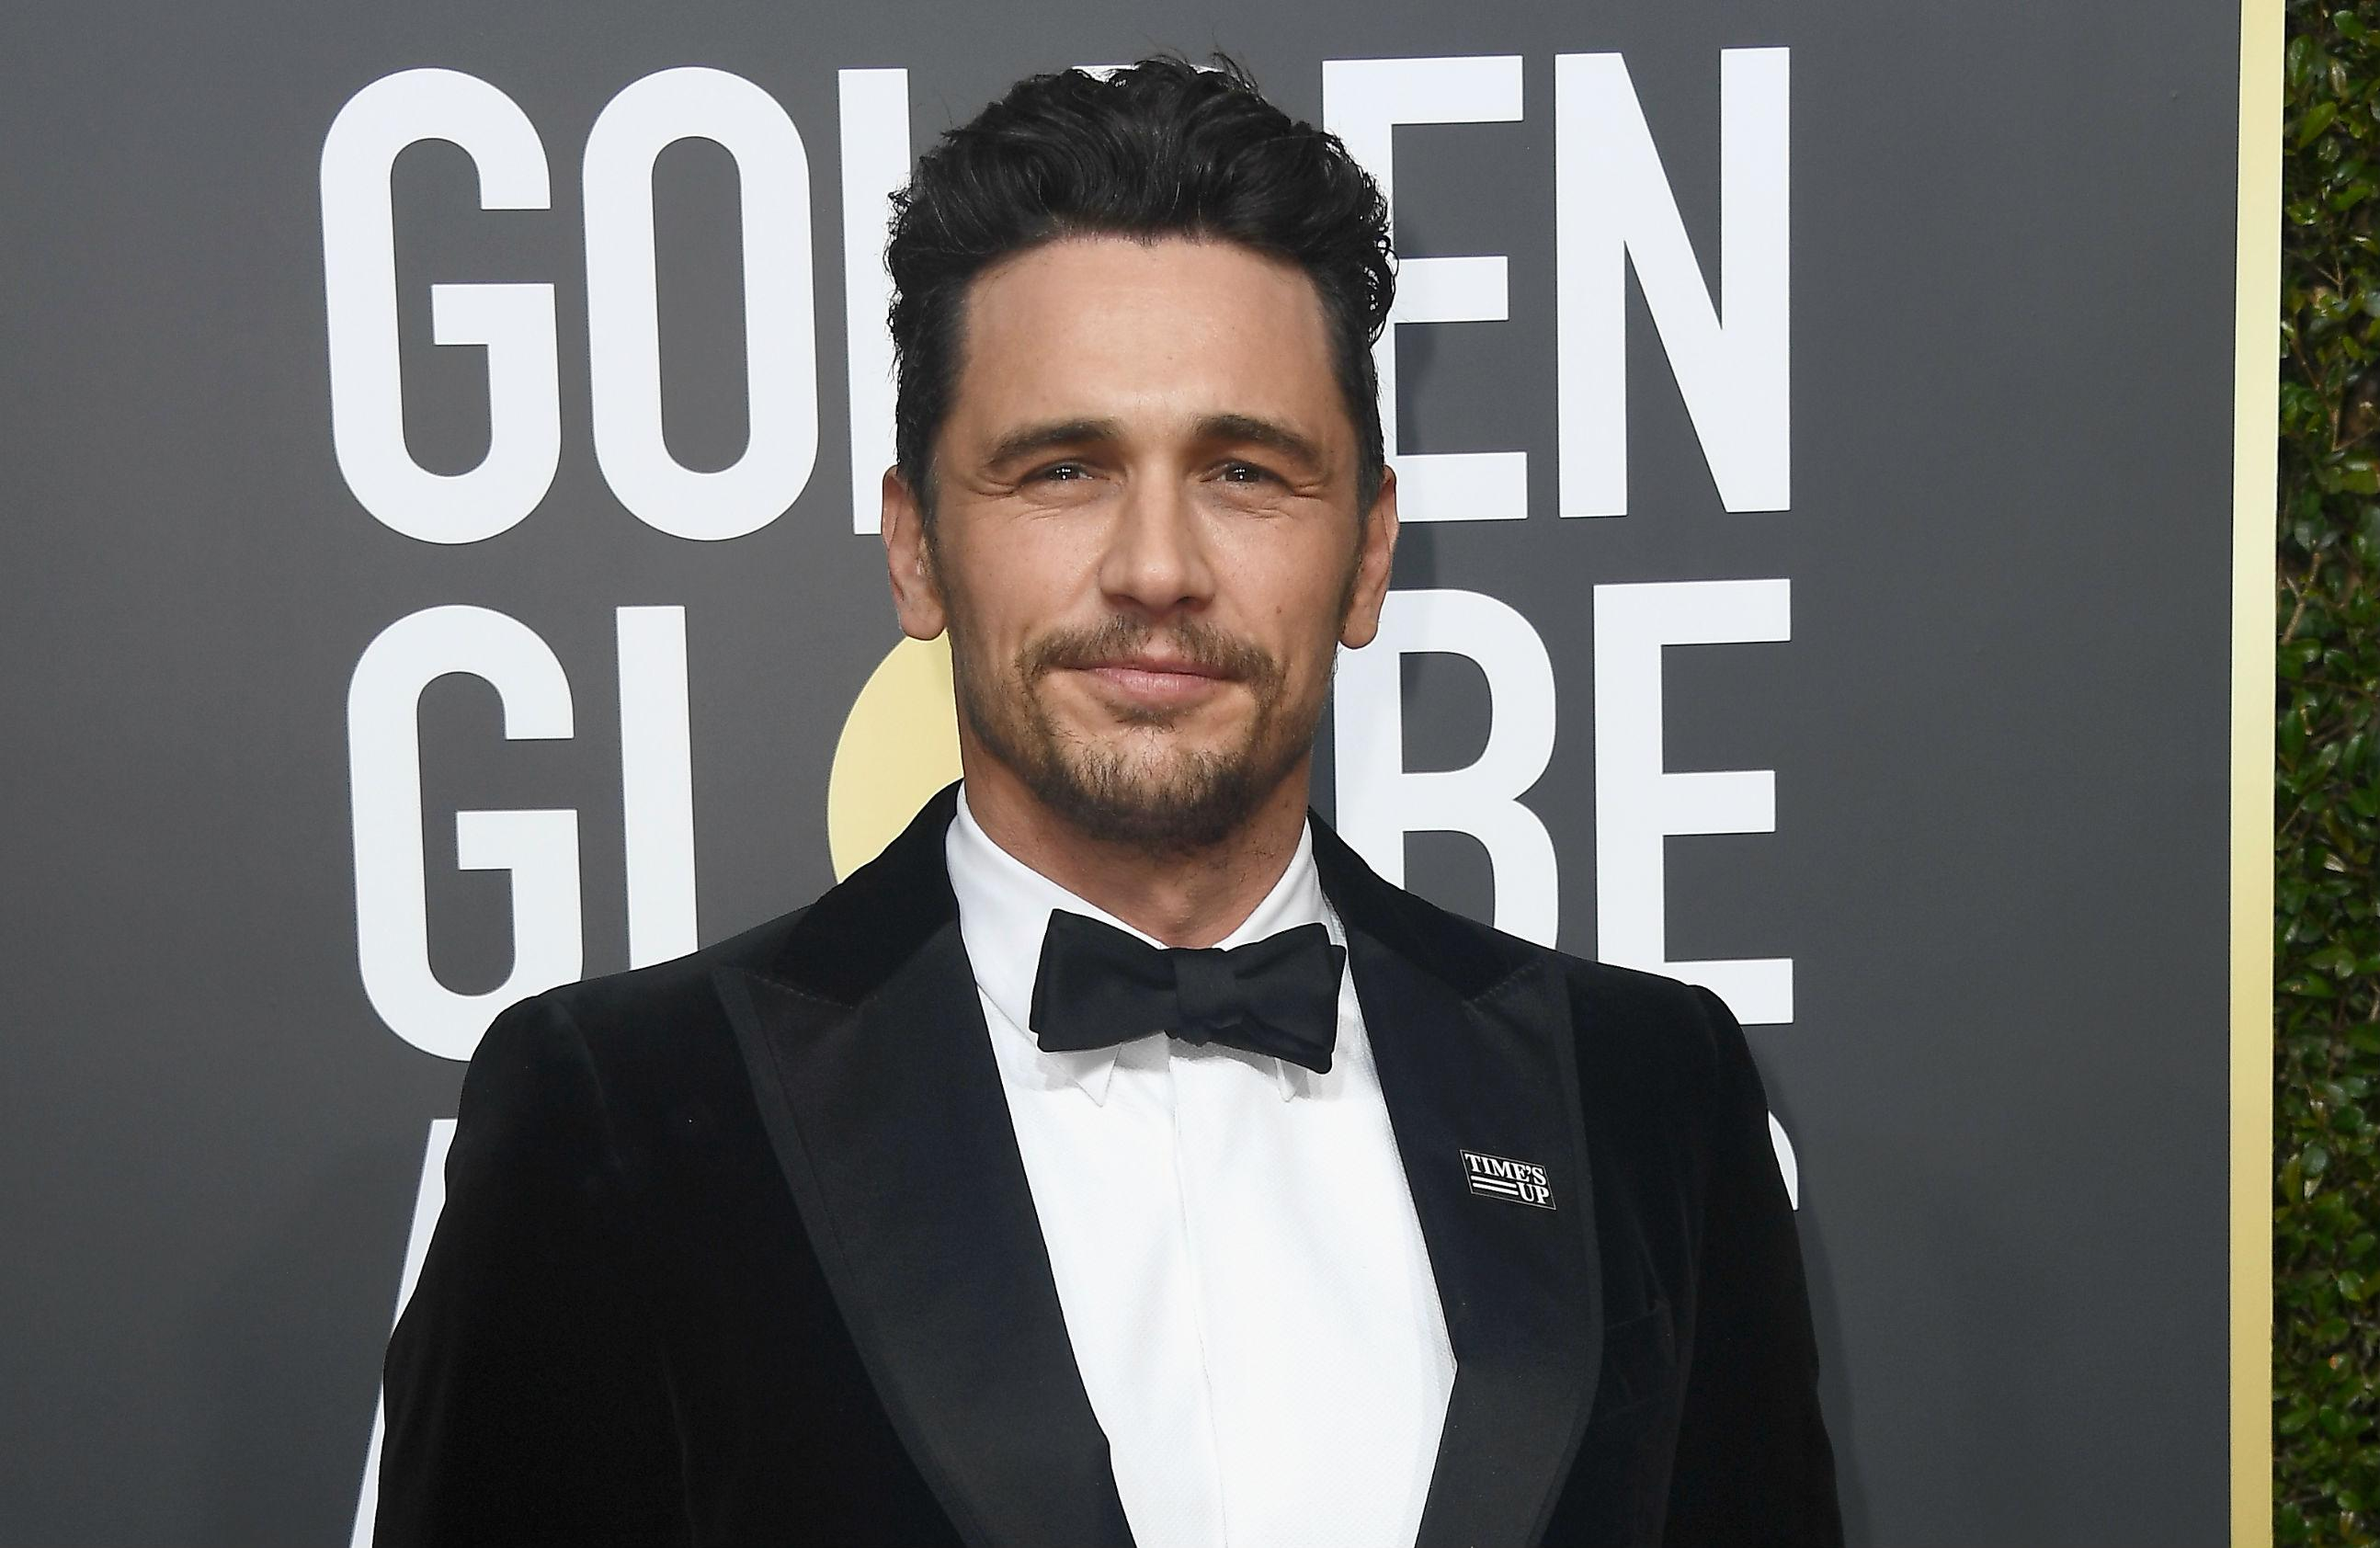 James Franco accuser: He's no Harvey Weinstein